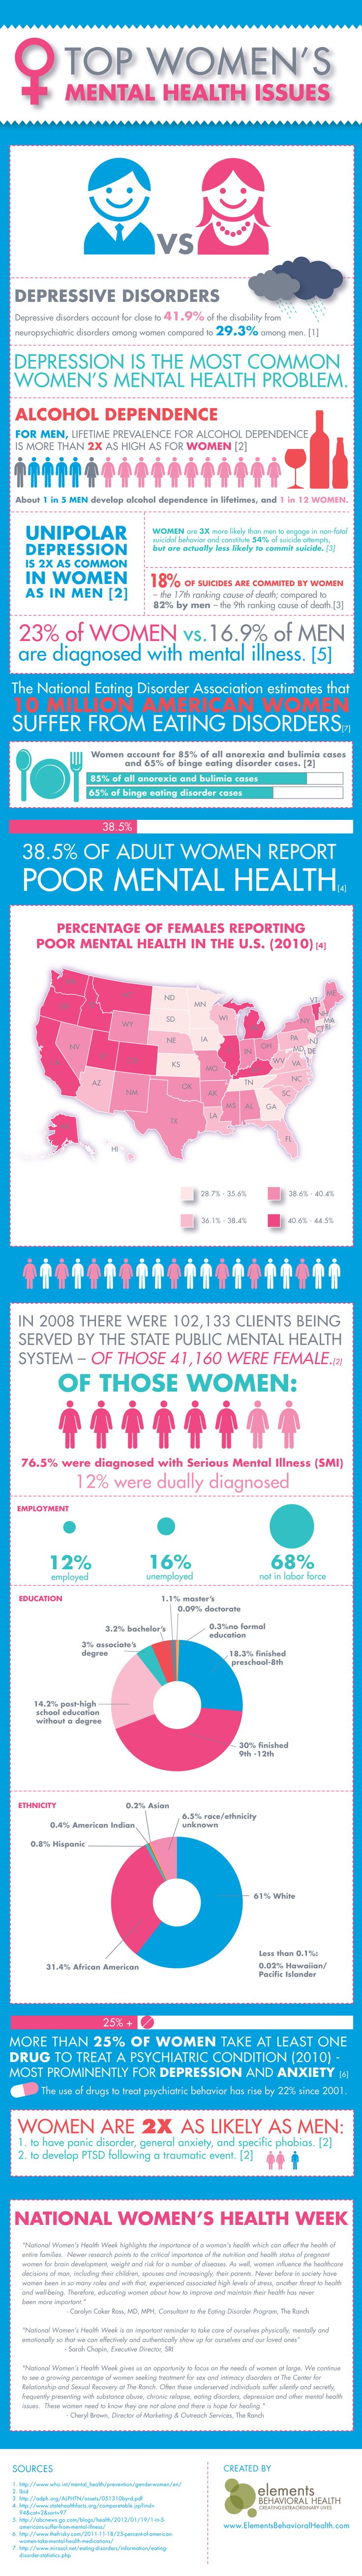 Top Women's Mental Health Issues | Learn more about women's mental health at http://www.1-800-therapist.com/search?search=women[field_gender][0]=%221026%22